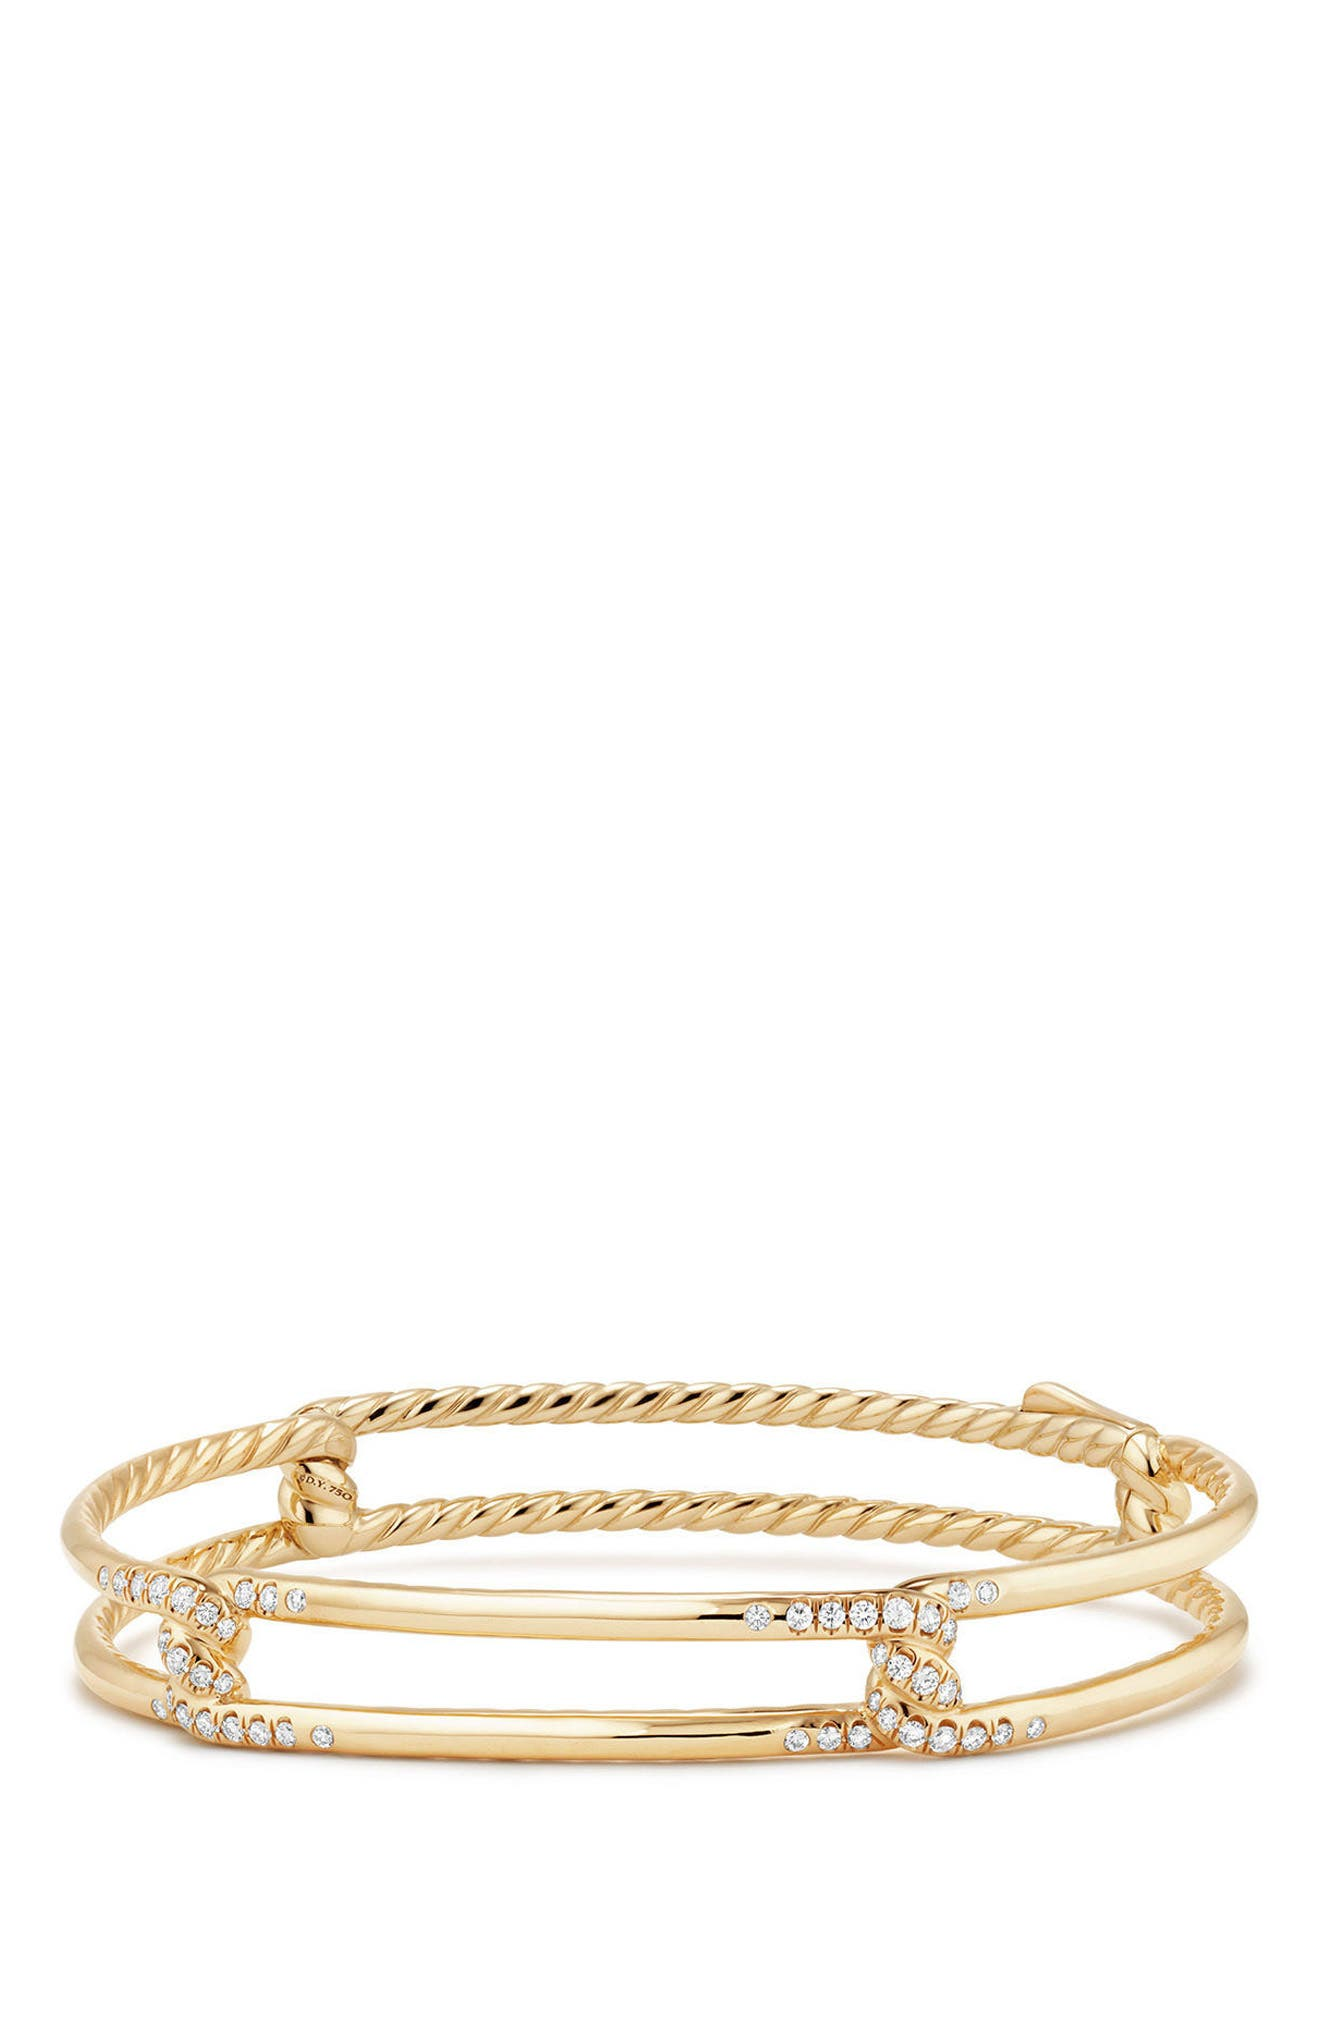 Continuance Bracelet with Diamond in 18K Gold,                         Main,                         color, YELLOW GOLD